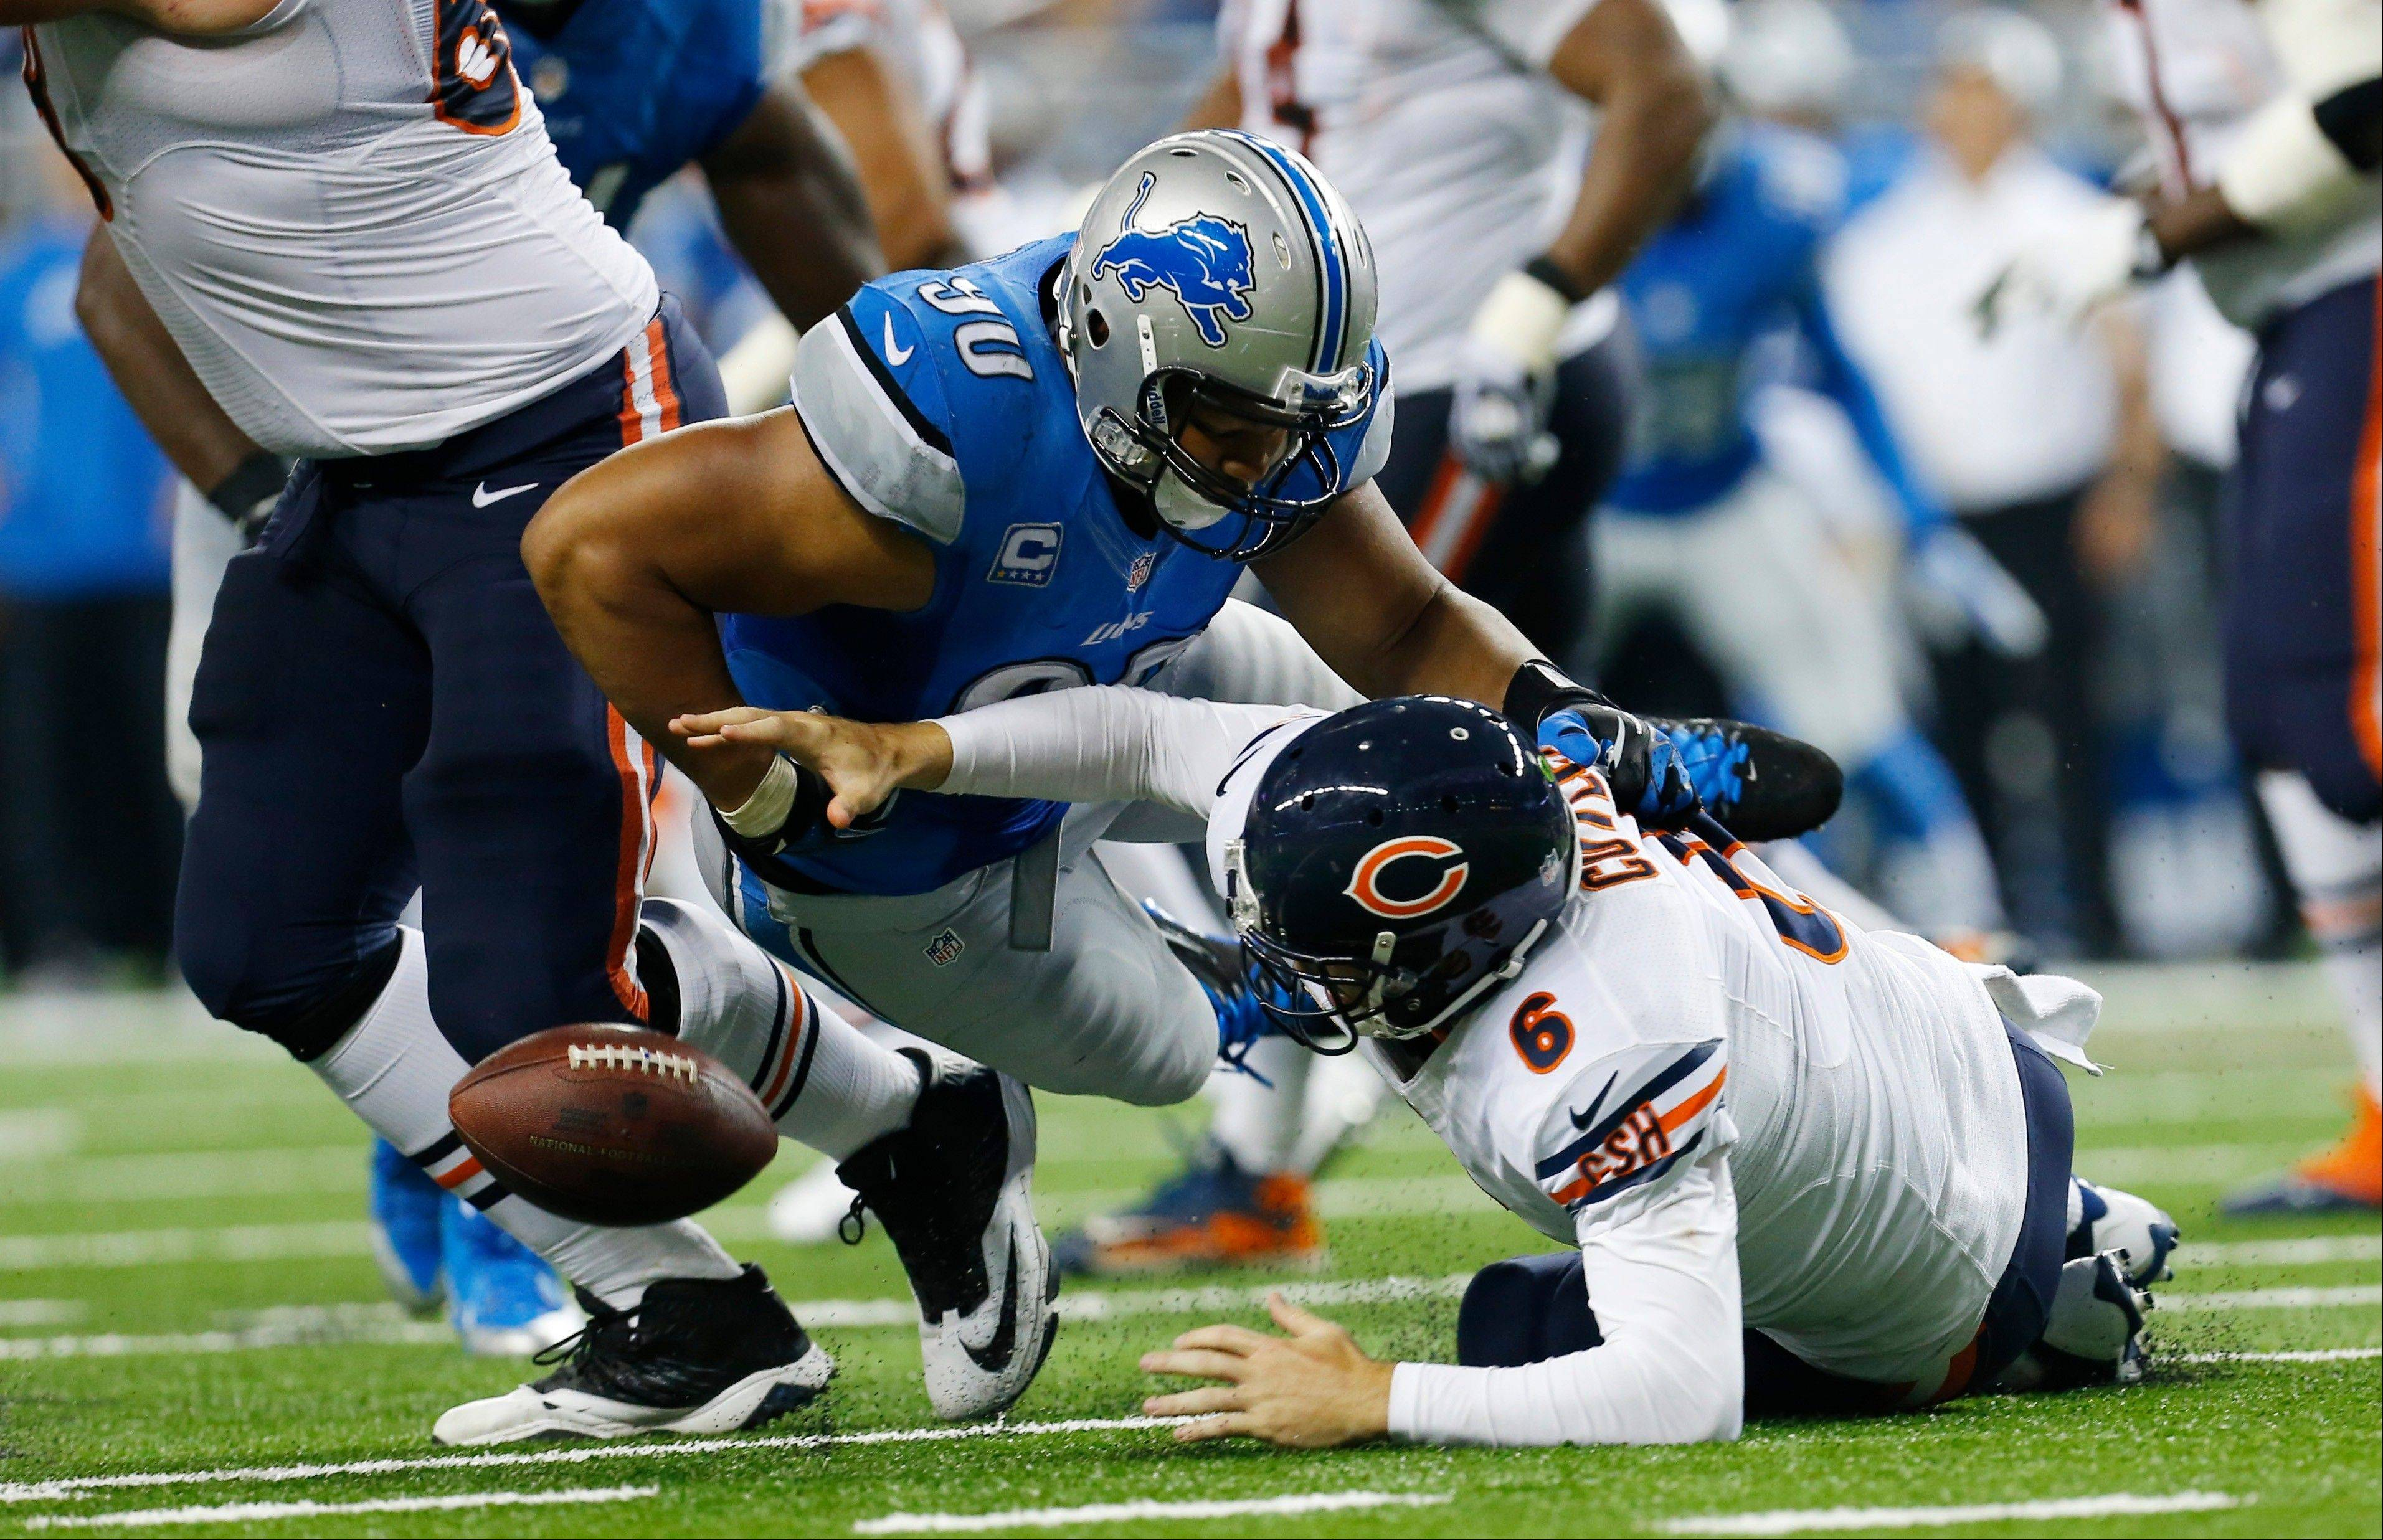 Bears quarterback Jay Cutler (6) fumbles the ball after a hit from Lions defensive tackle Ndamukong Suh (90) during the third quarter of an NFL football game against Sunday at Ford Field in Detroit. The fumble was recovered by Detroit Lions defensive tackle Nick Fairley for a 4-yard touchdown.